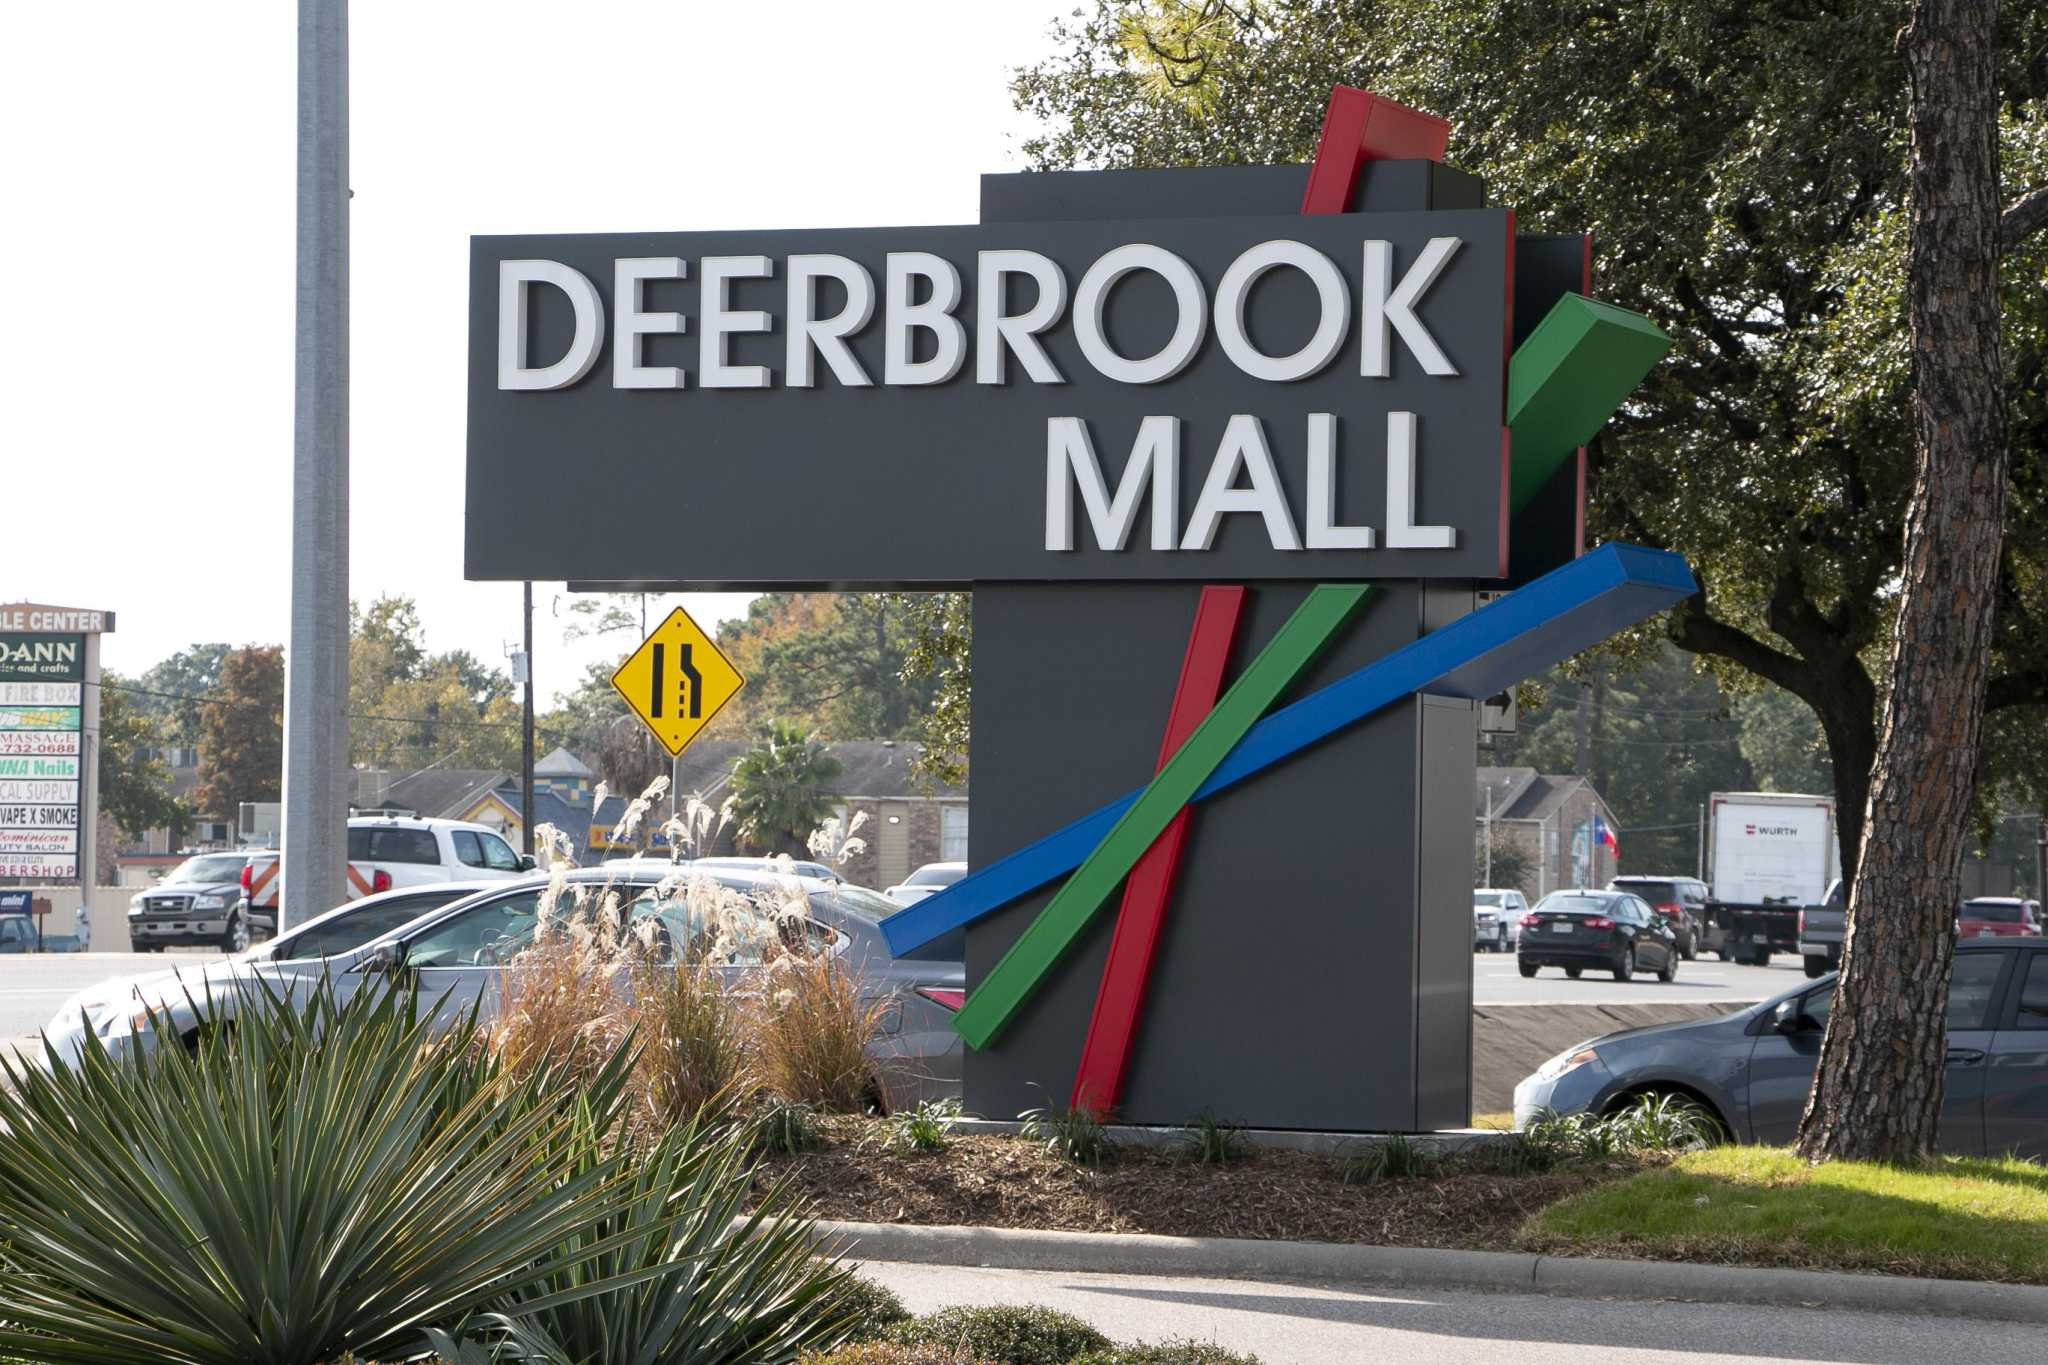 Deerbrook Mall hopes new stores help usher in busy holiday season